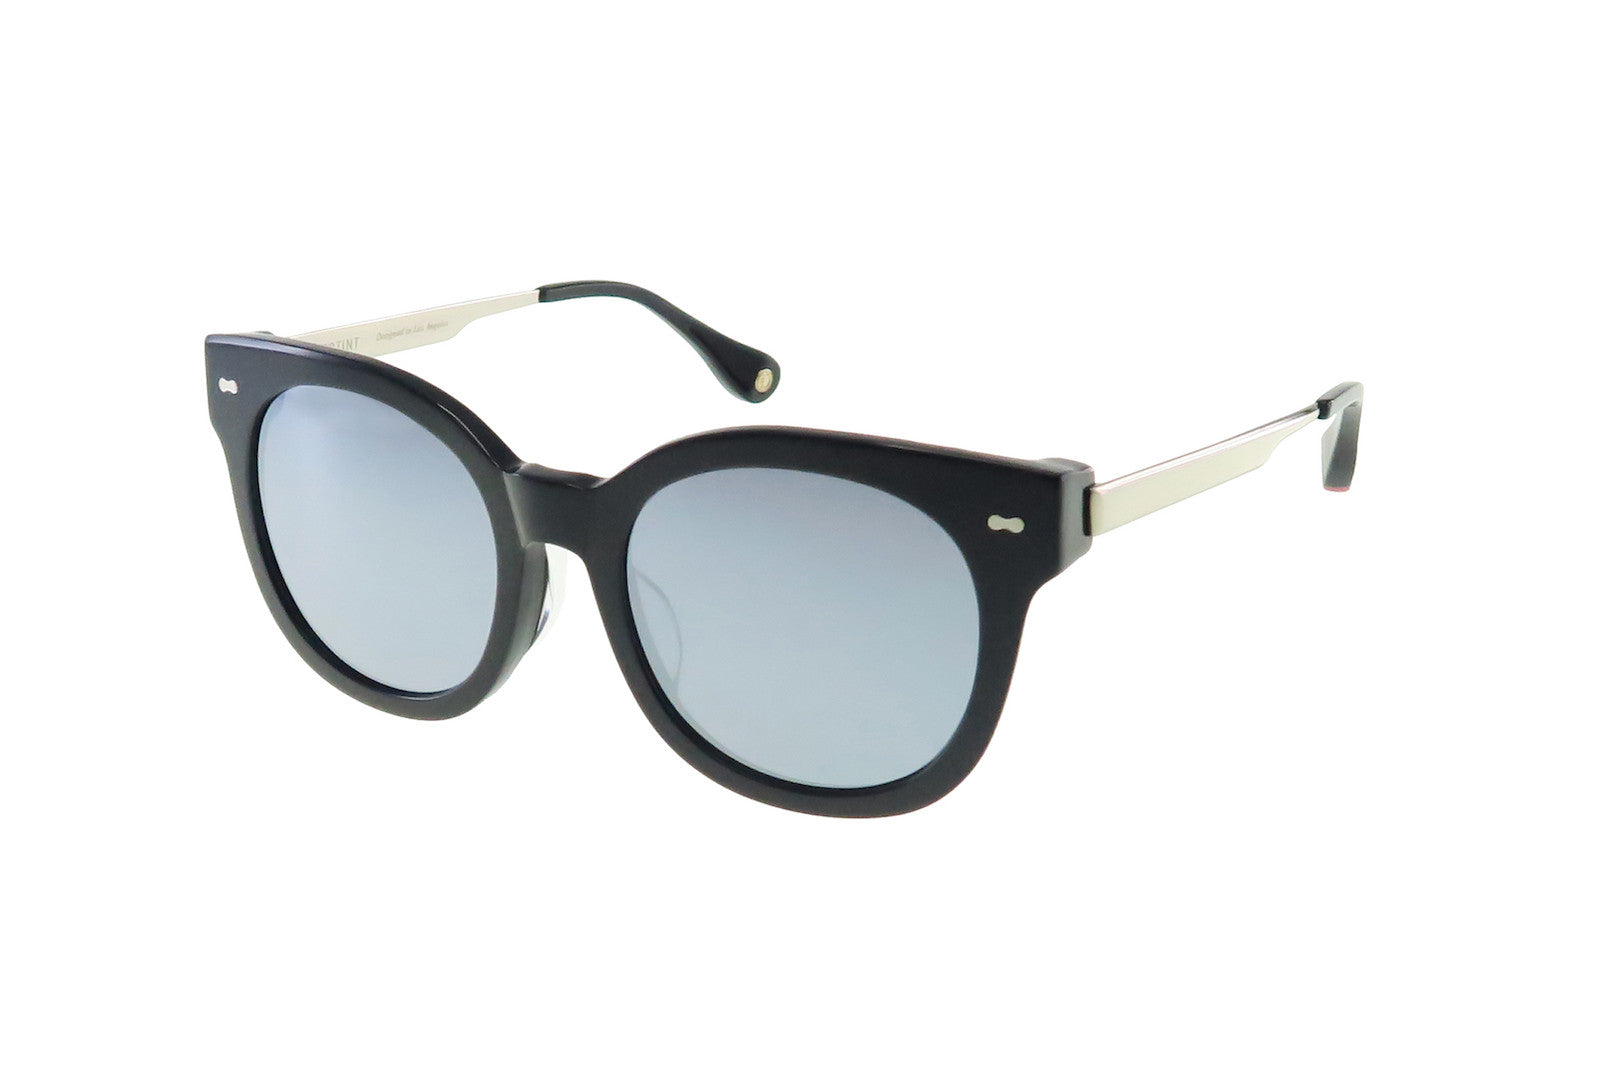 Jamboree 922 - Peppertint - Designer sunglasses